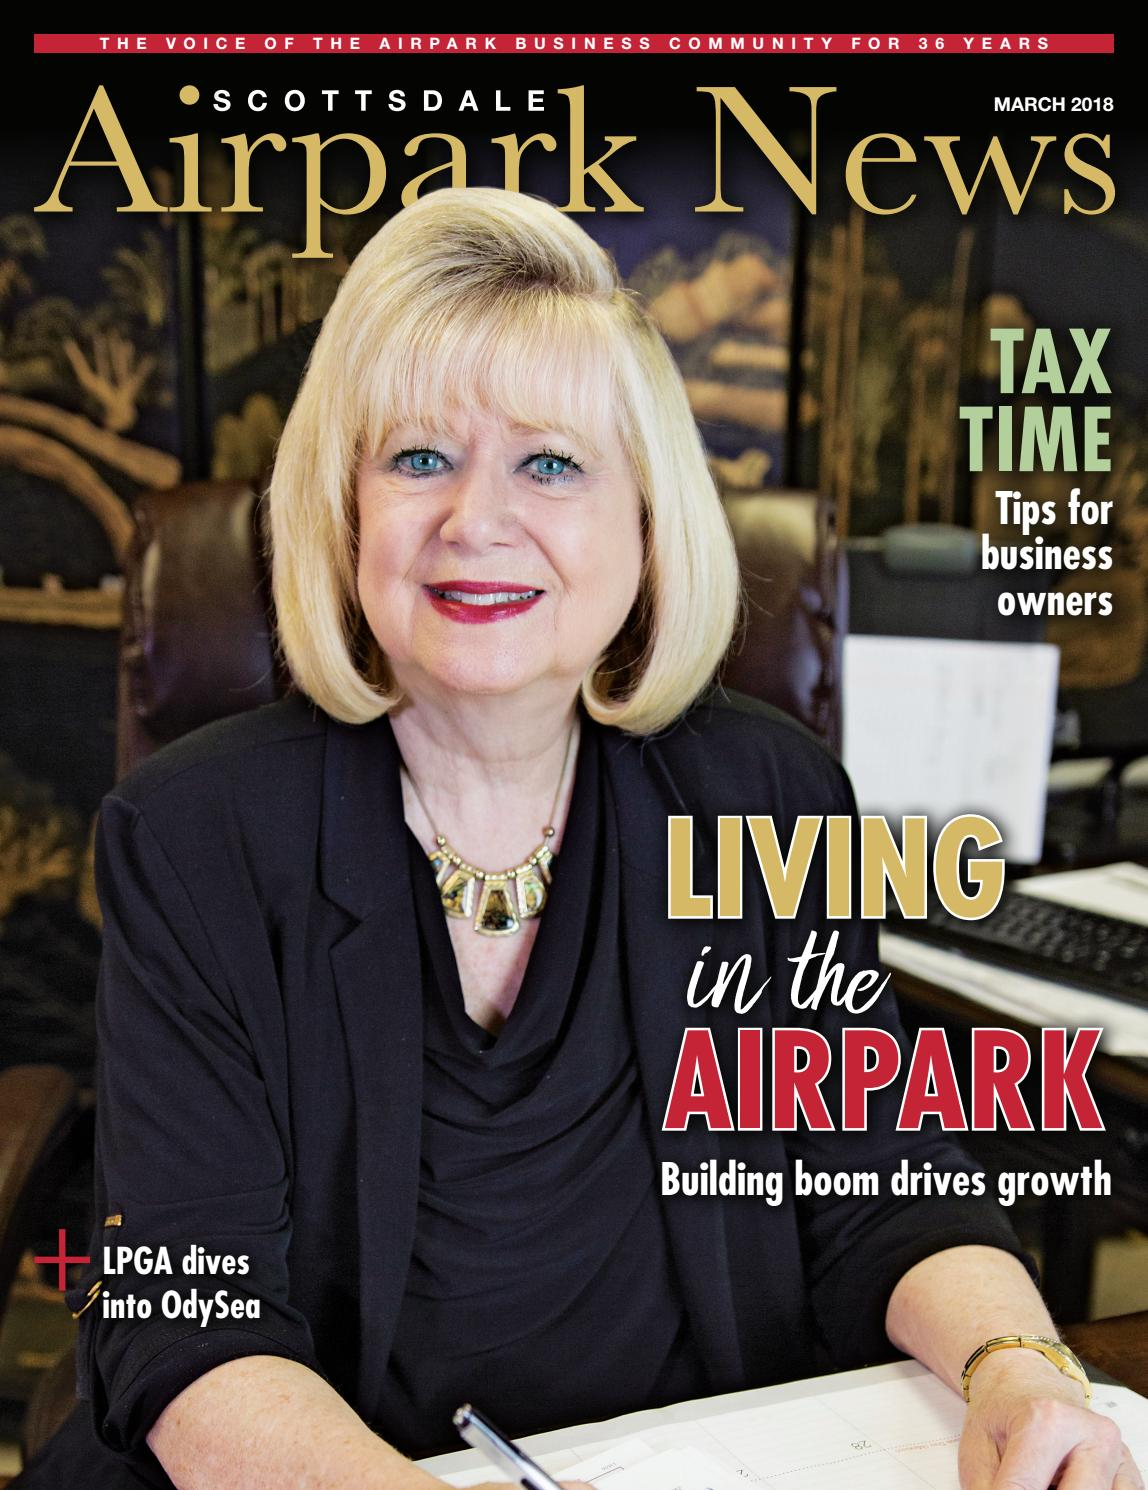 Scottsdale Airpark News March 2018 By Times Media Group Issuu